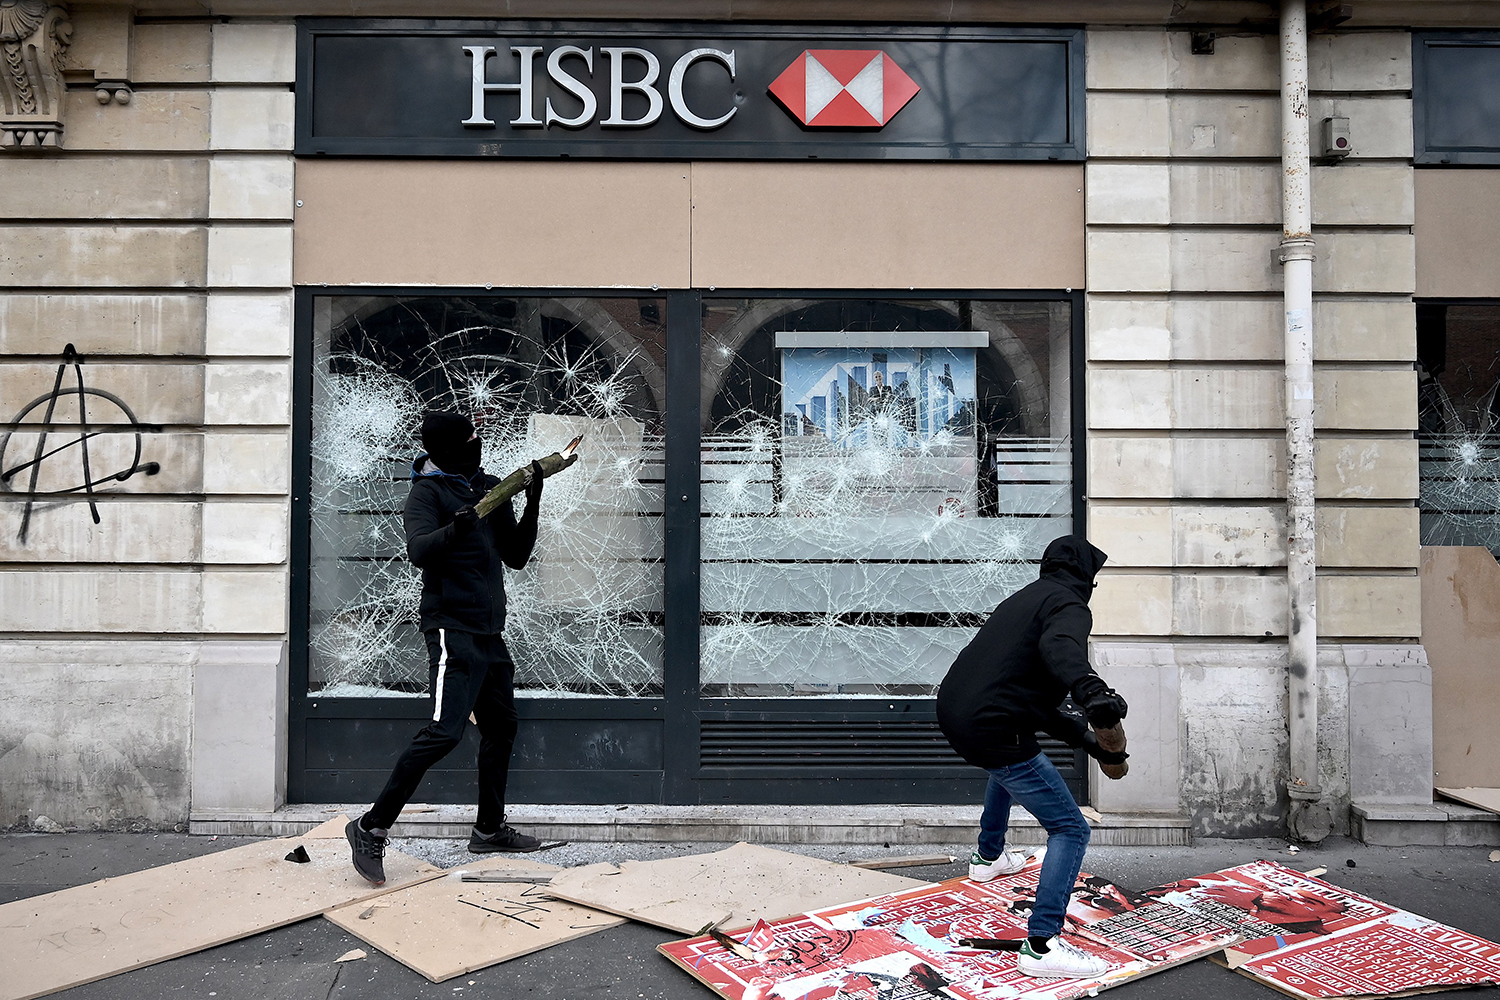 Two men break the windows of a branch of the HSBC bank during a demonstration in Paris on Jan. 11 as part as a nationwide multi-sector strike against the French government's pensions overhaul. LIONEL BONAVENTURE/AFP via Getty Images